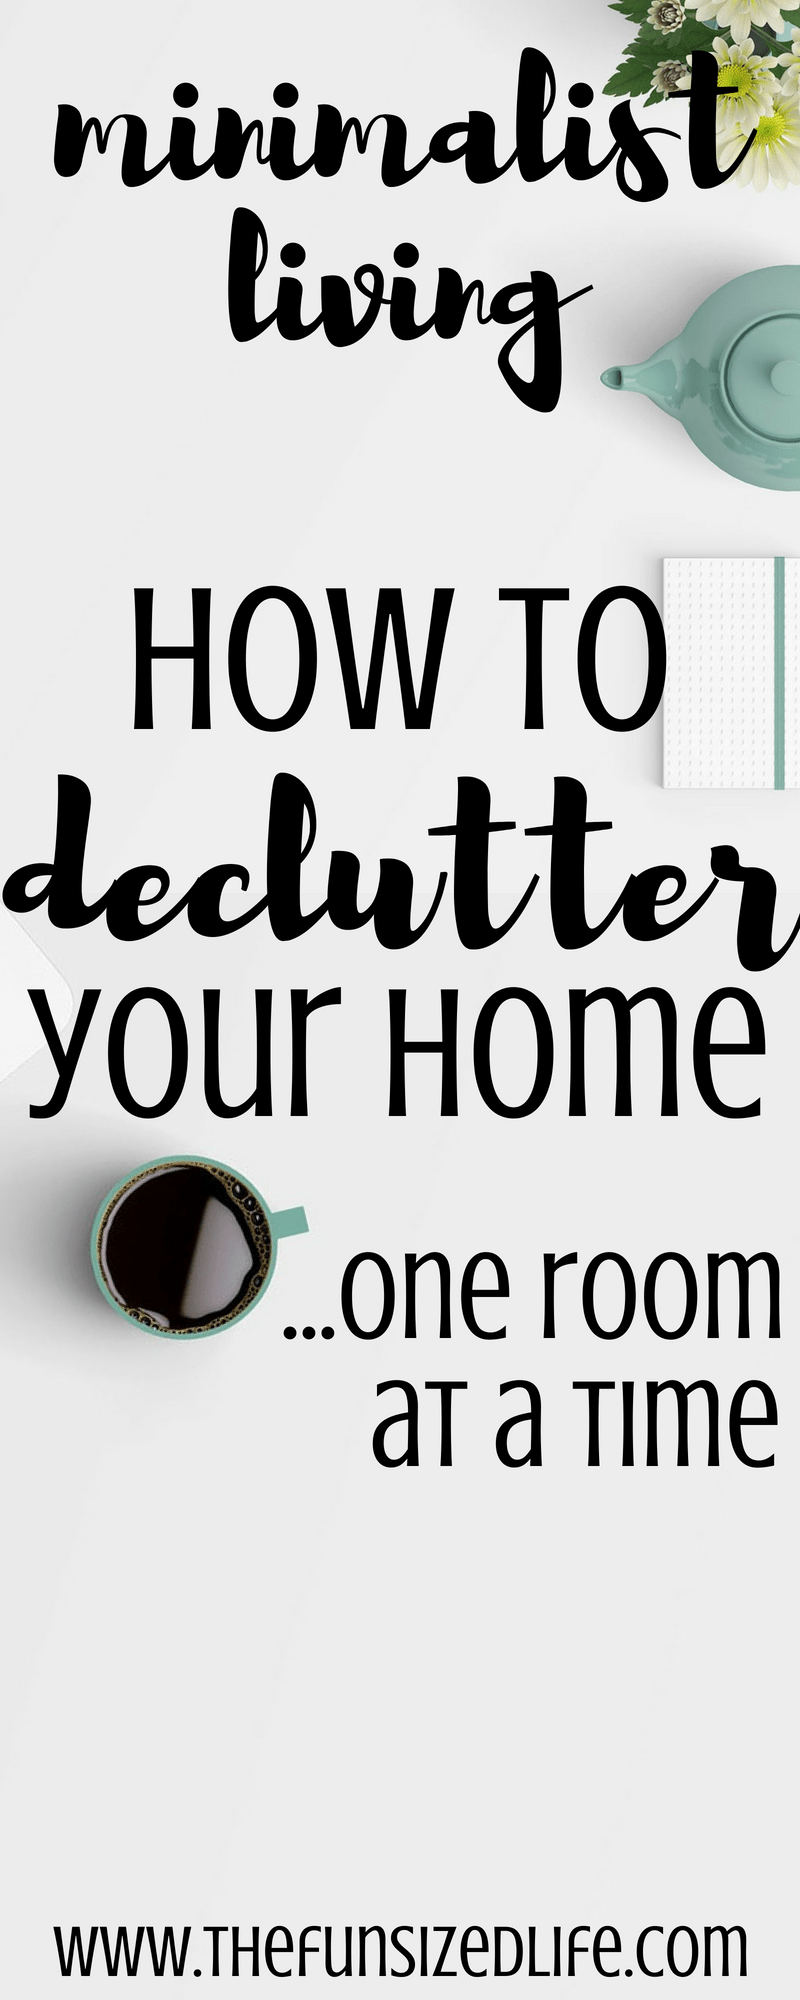 Declutter your home and start a minimalist lifestyle in just a few easy steps. #minimalist #downsize #declutter #home #minimalistlifestyle #declutteryourhome